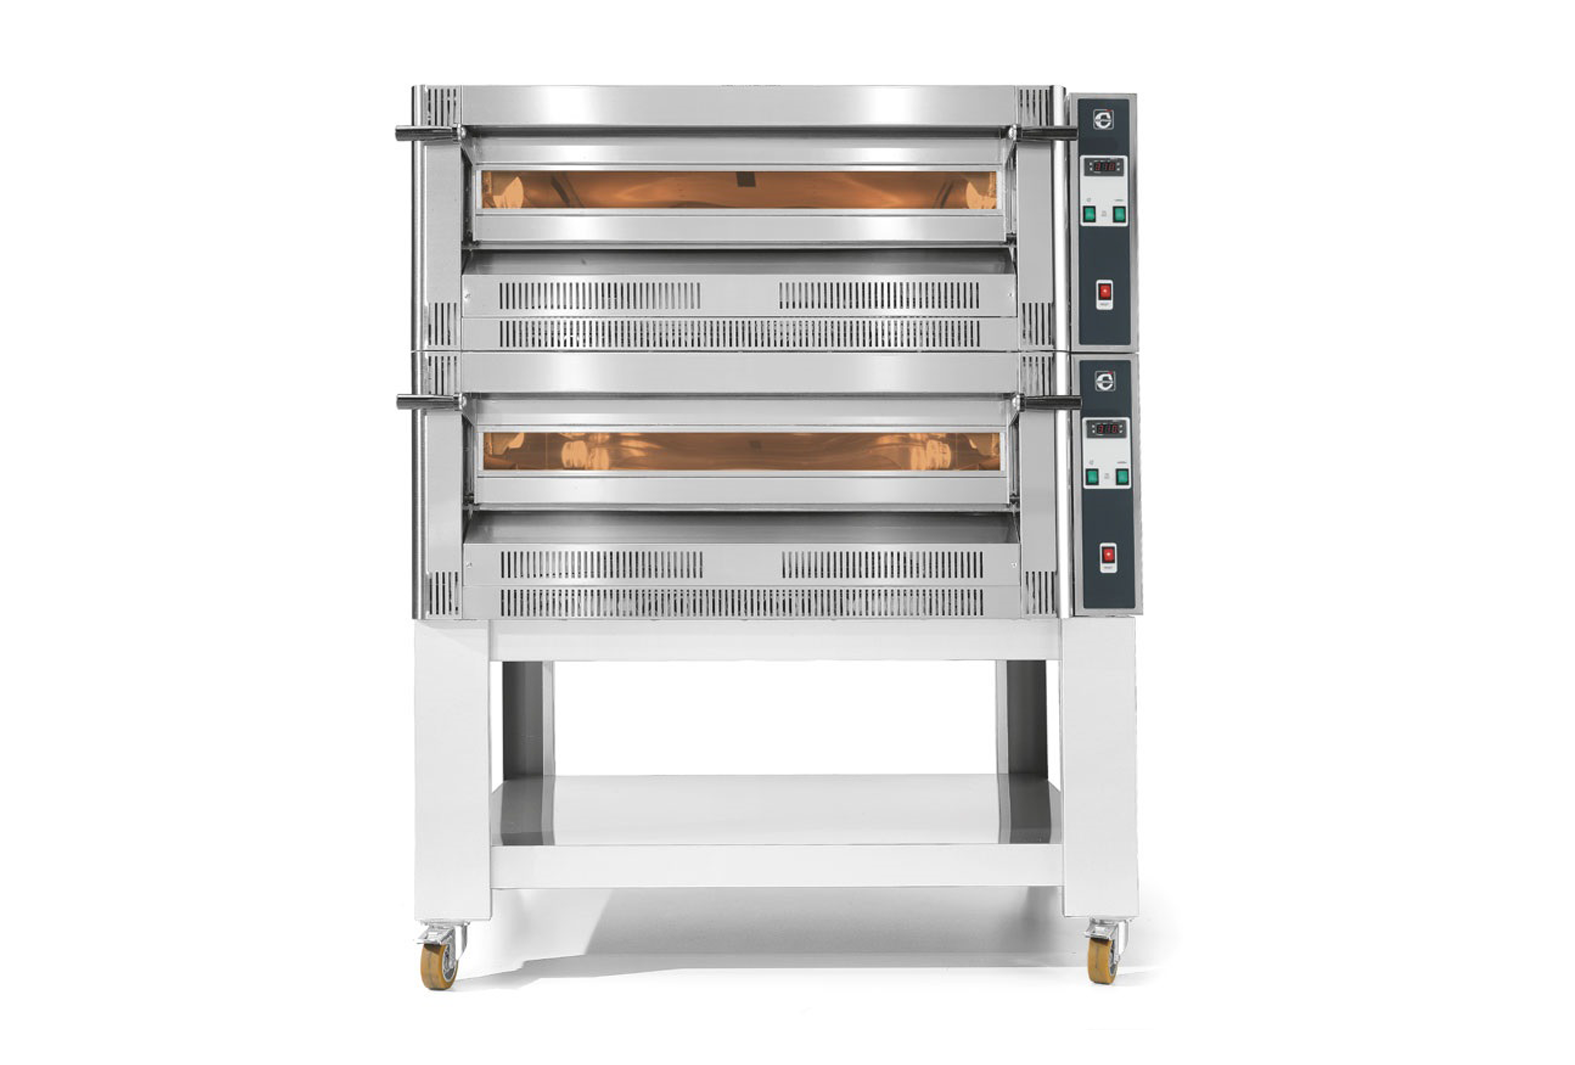 Cuppone Pizza Ovens Llk